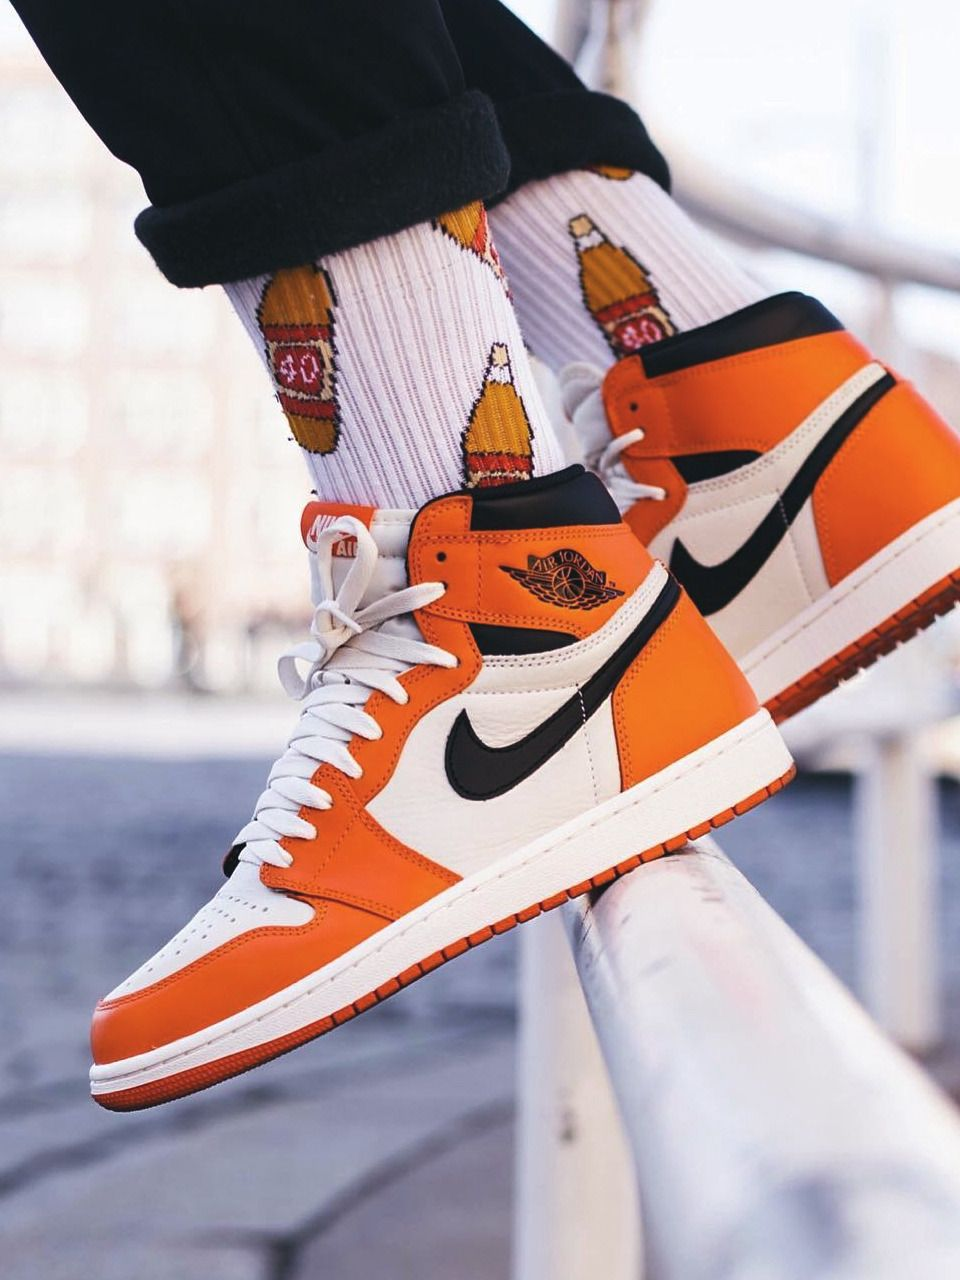 Nike Air Jordan 1 'Shattered Backboard 2.0' 2016 (by